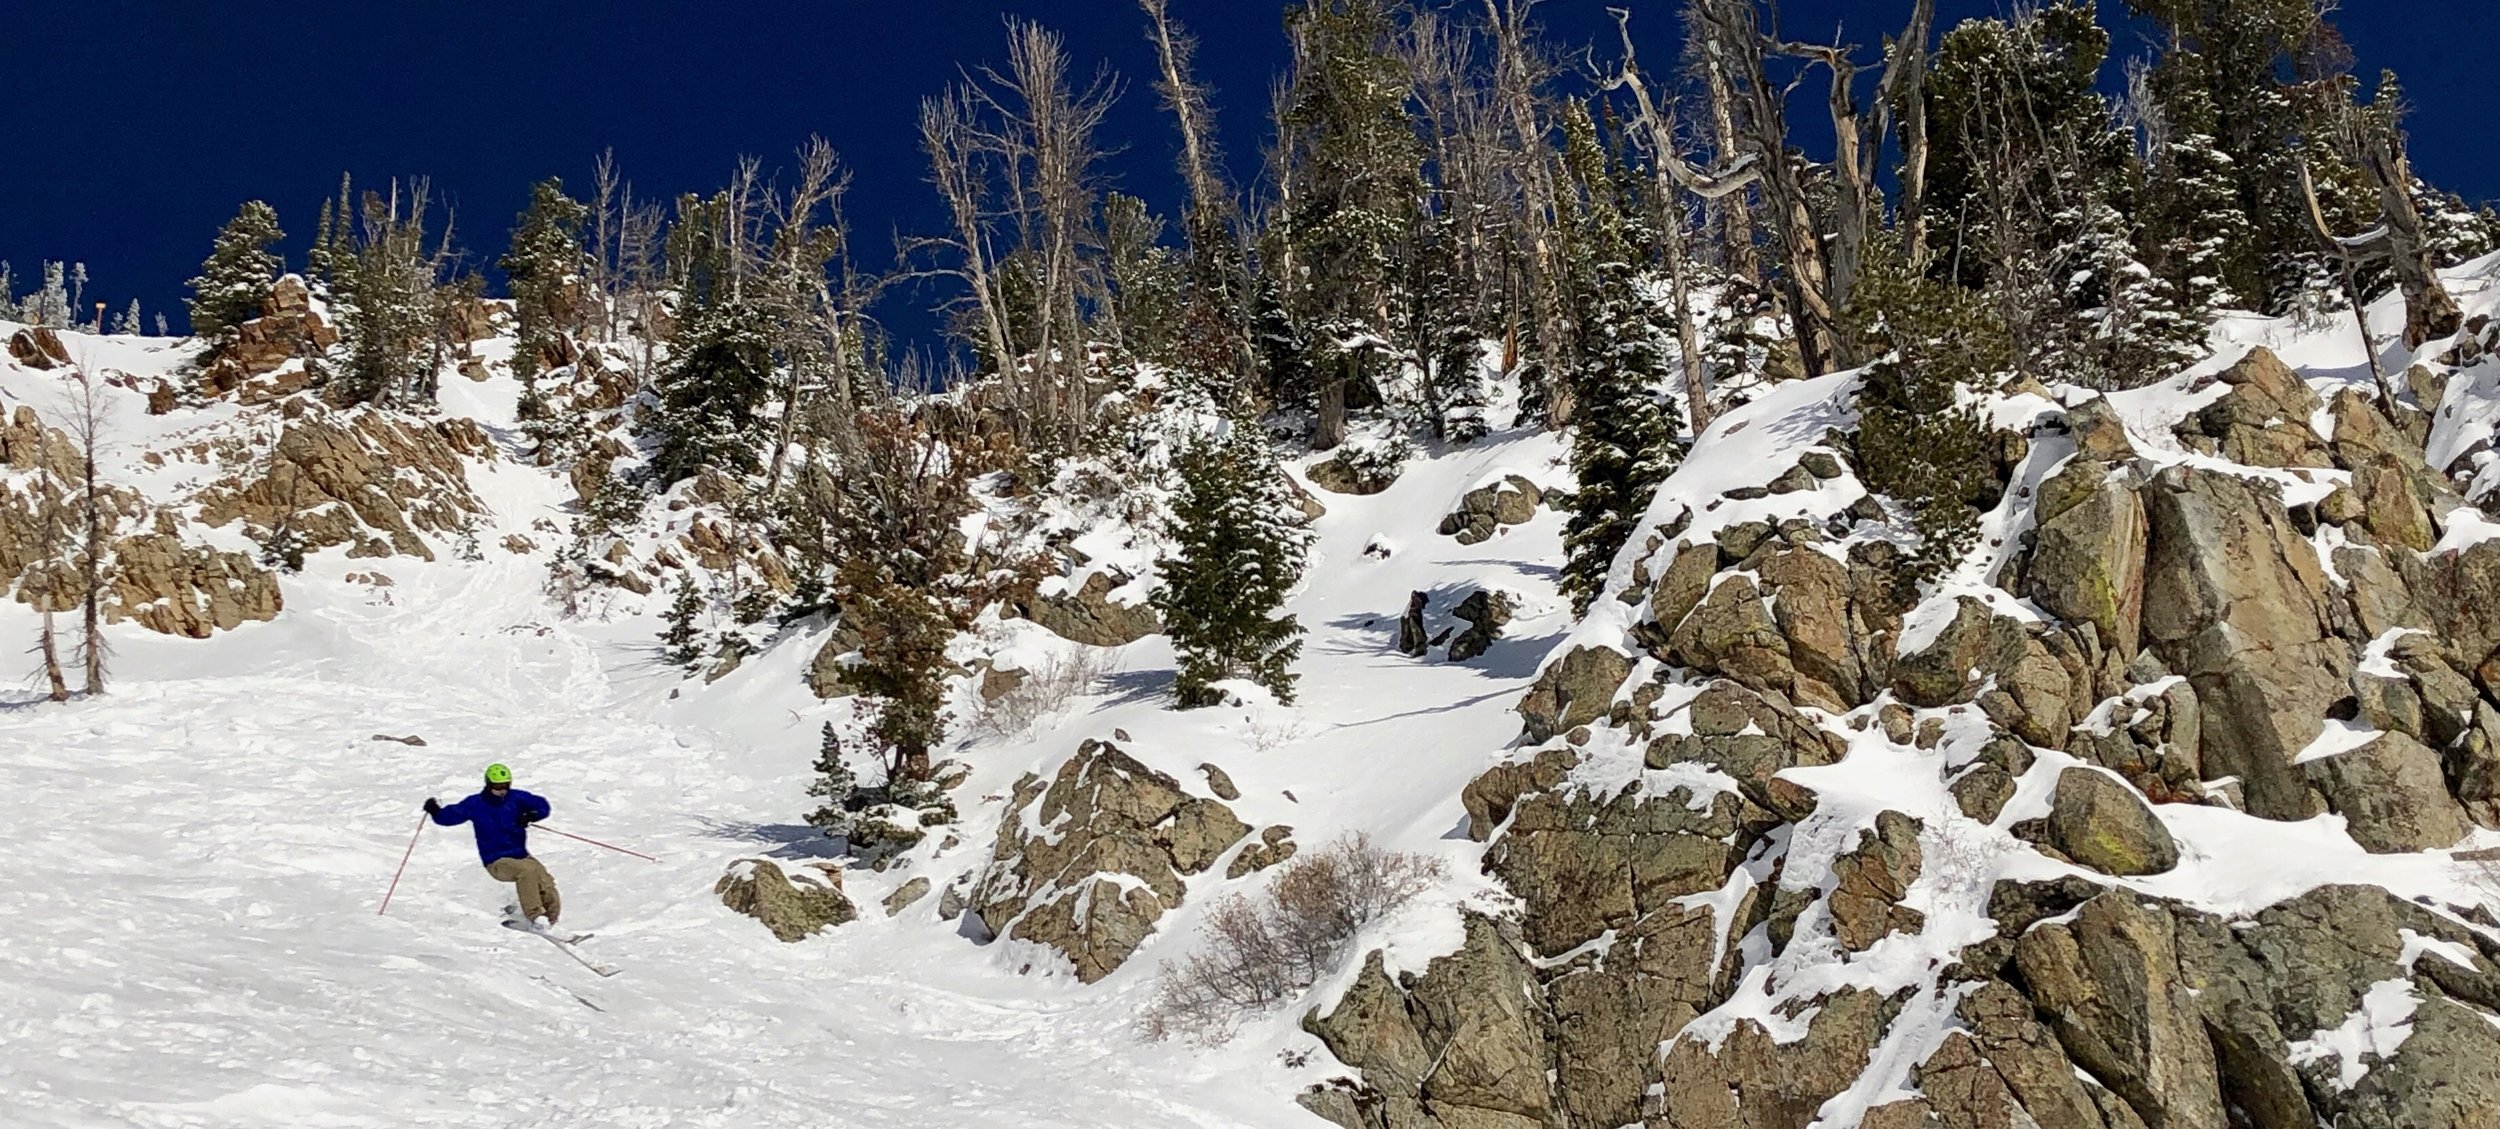 Stahl skiing in the Tetons.